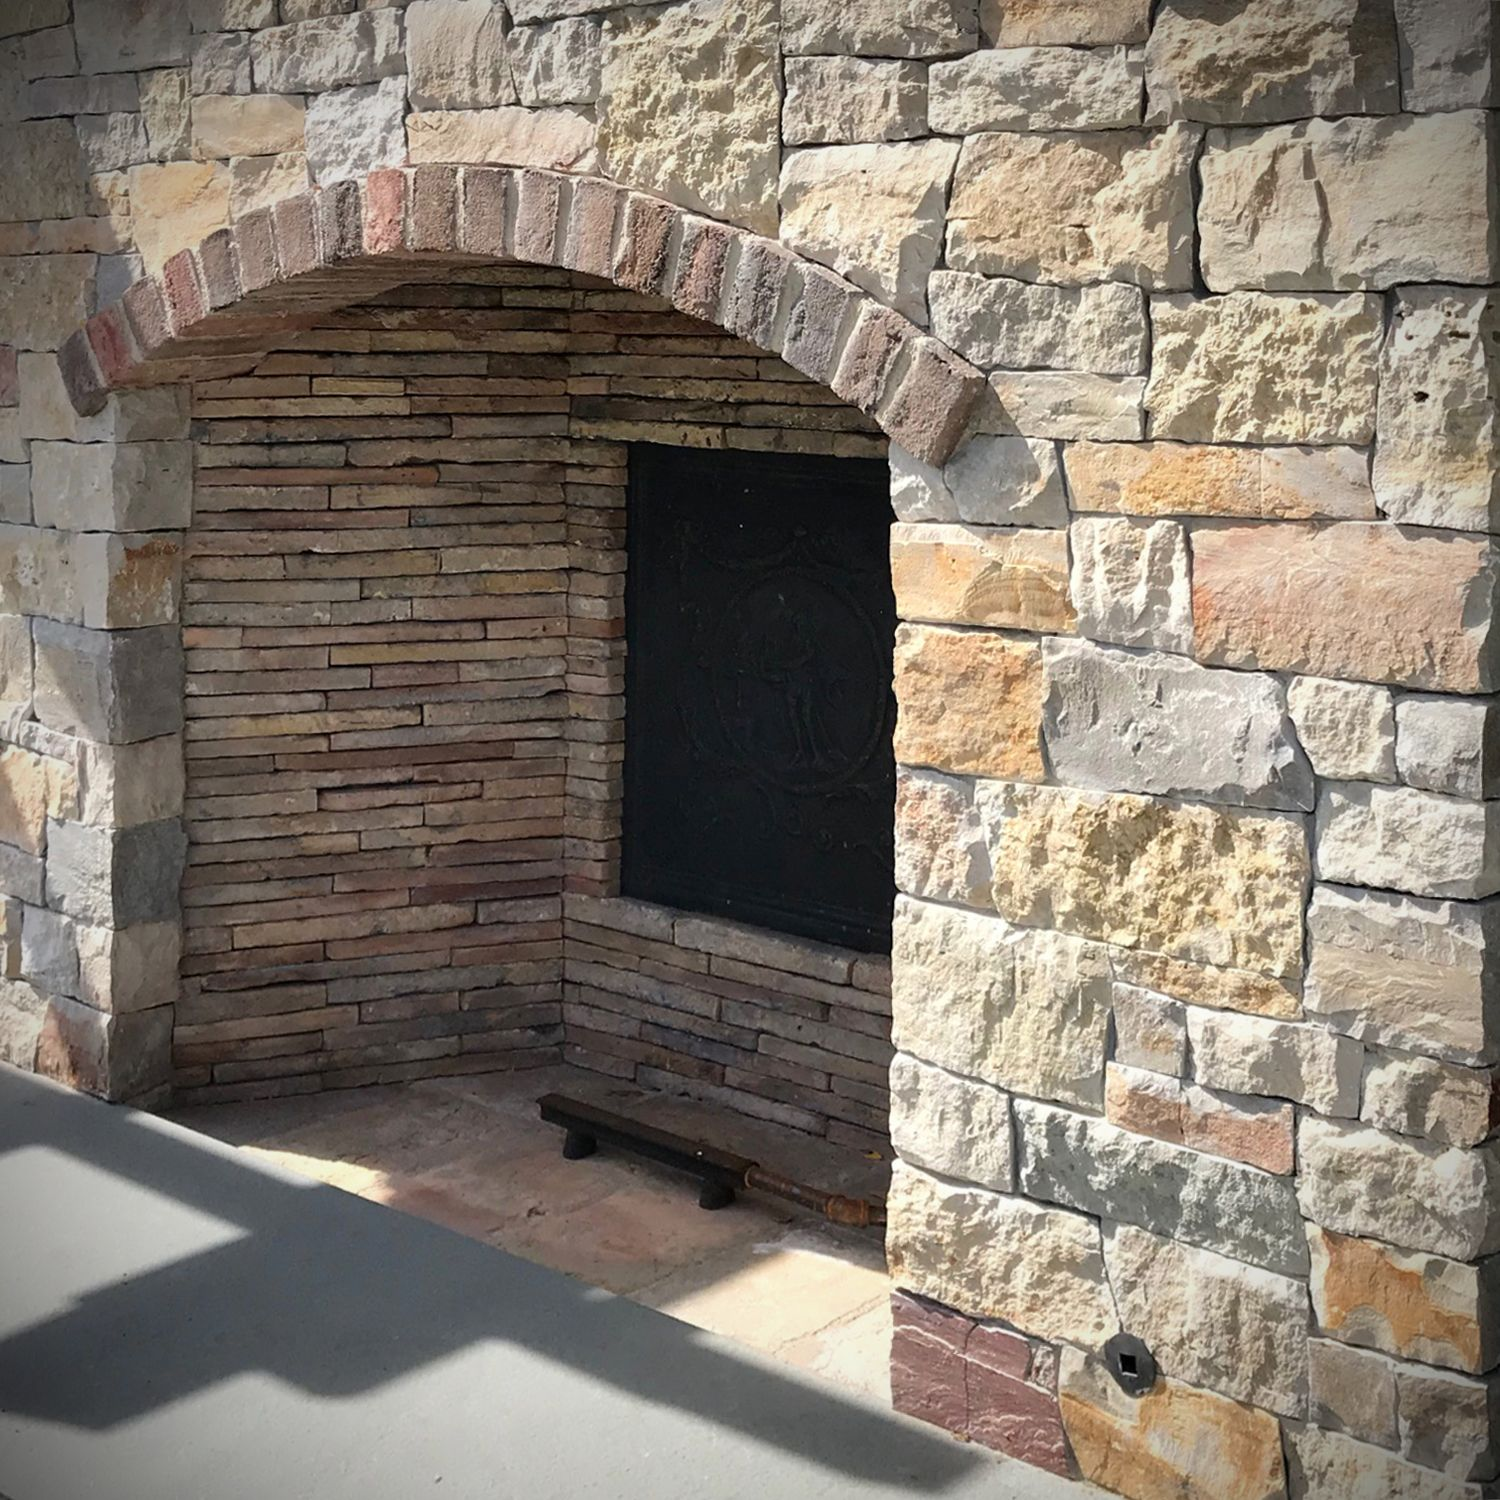 Pool Landscaping Modern Rustic Exterior Stone Fireplace Wall Stone Outdoor Stone Fireplaces Stone Fireplace Designs Rustic Exterior